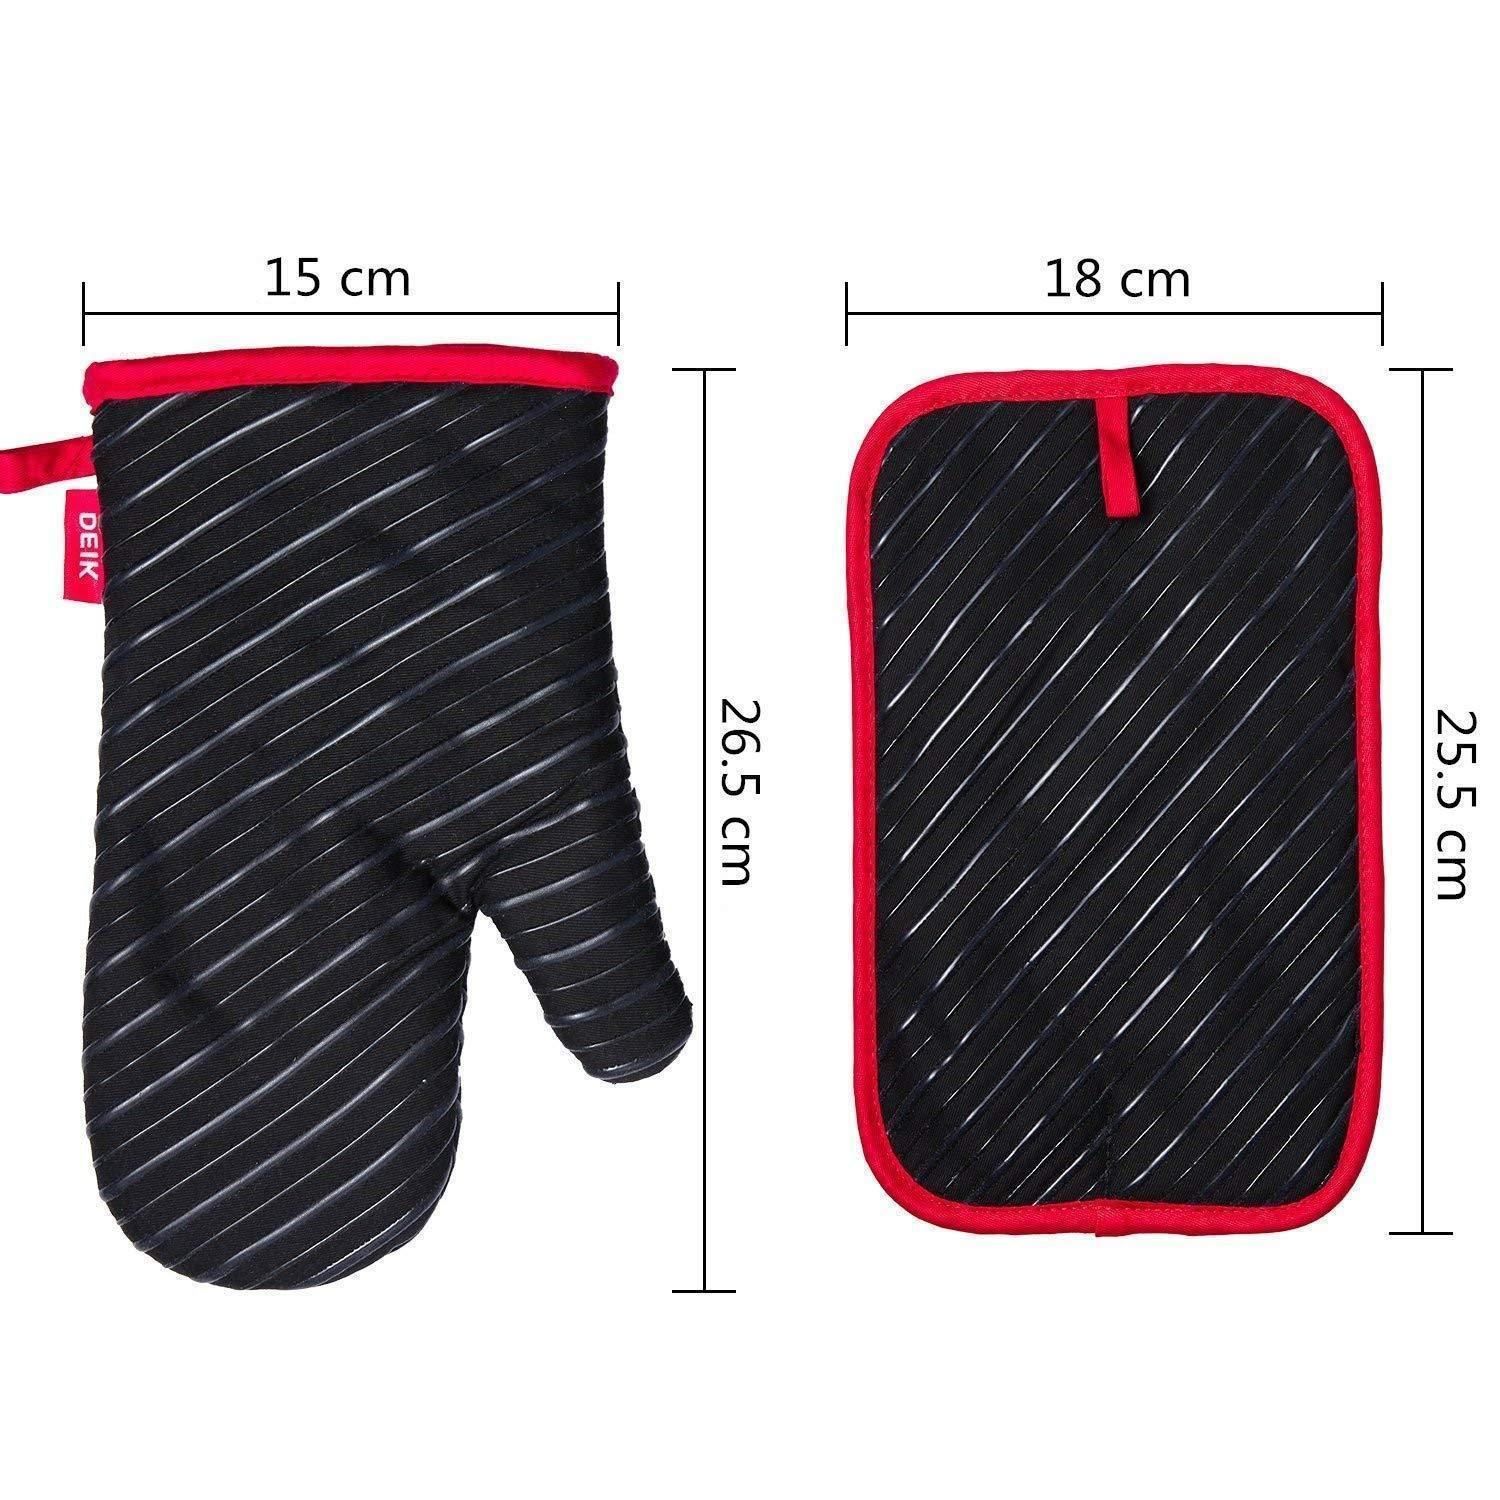 Featured deik oven mitts and potholders 4 piece sets for kitchen counter safe mats and advanced heat resistant oven mitt non slip textured grip pot holders nano technology